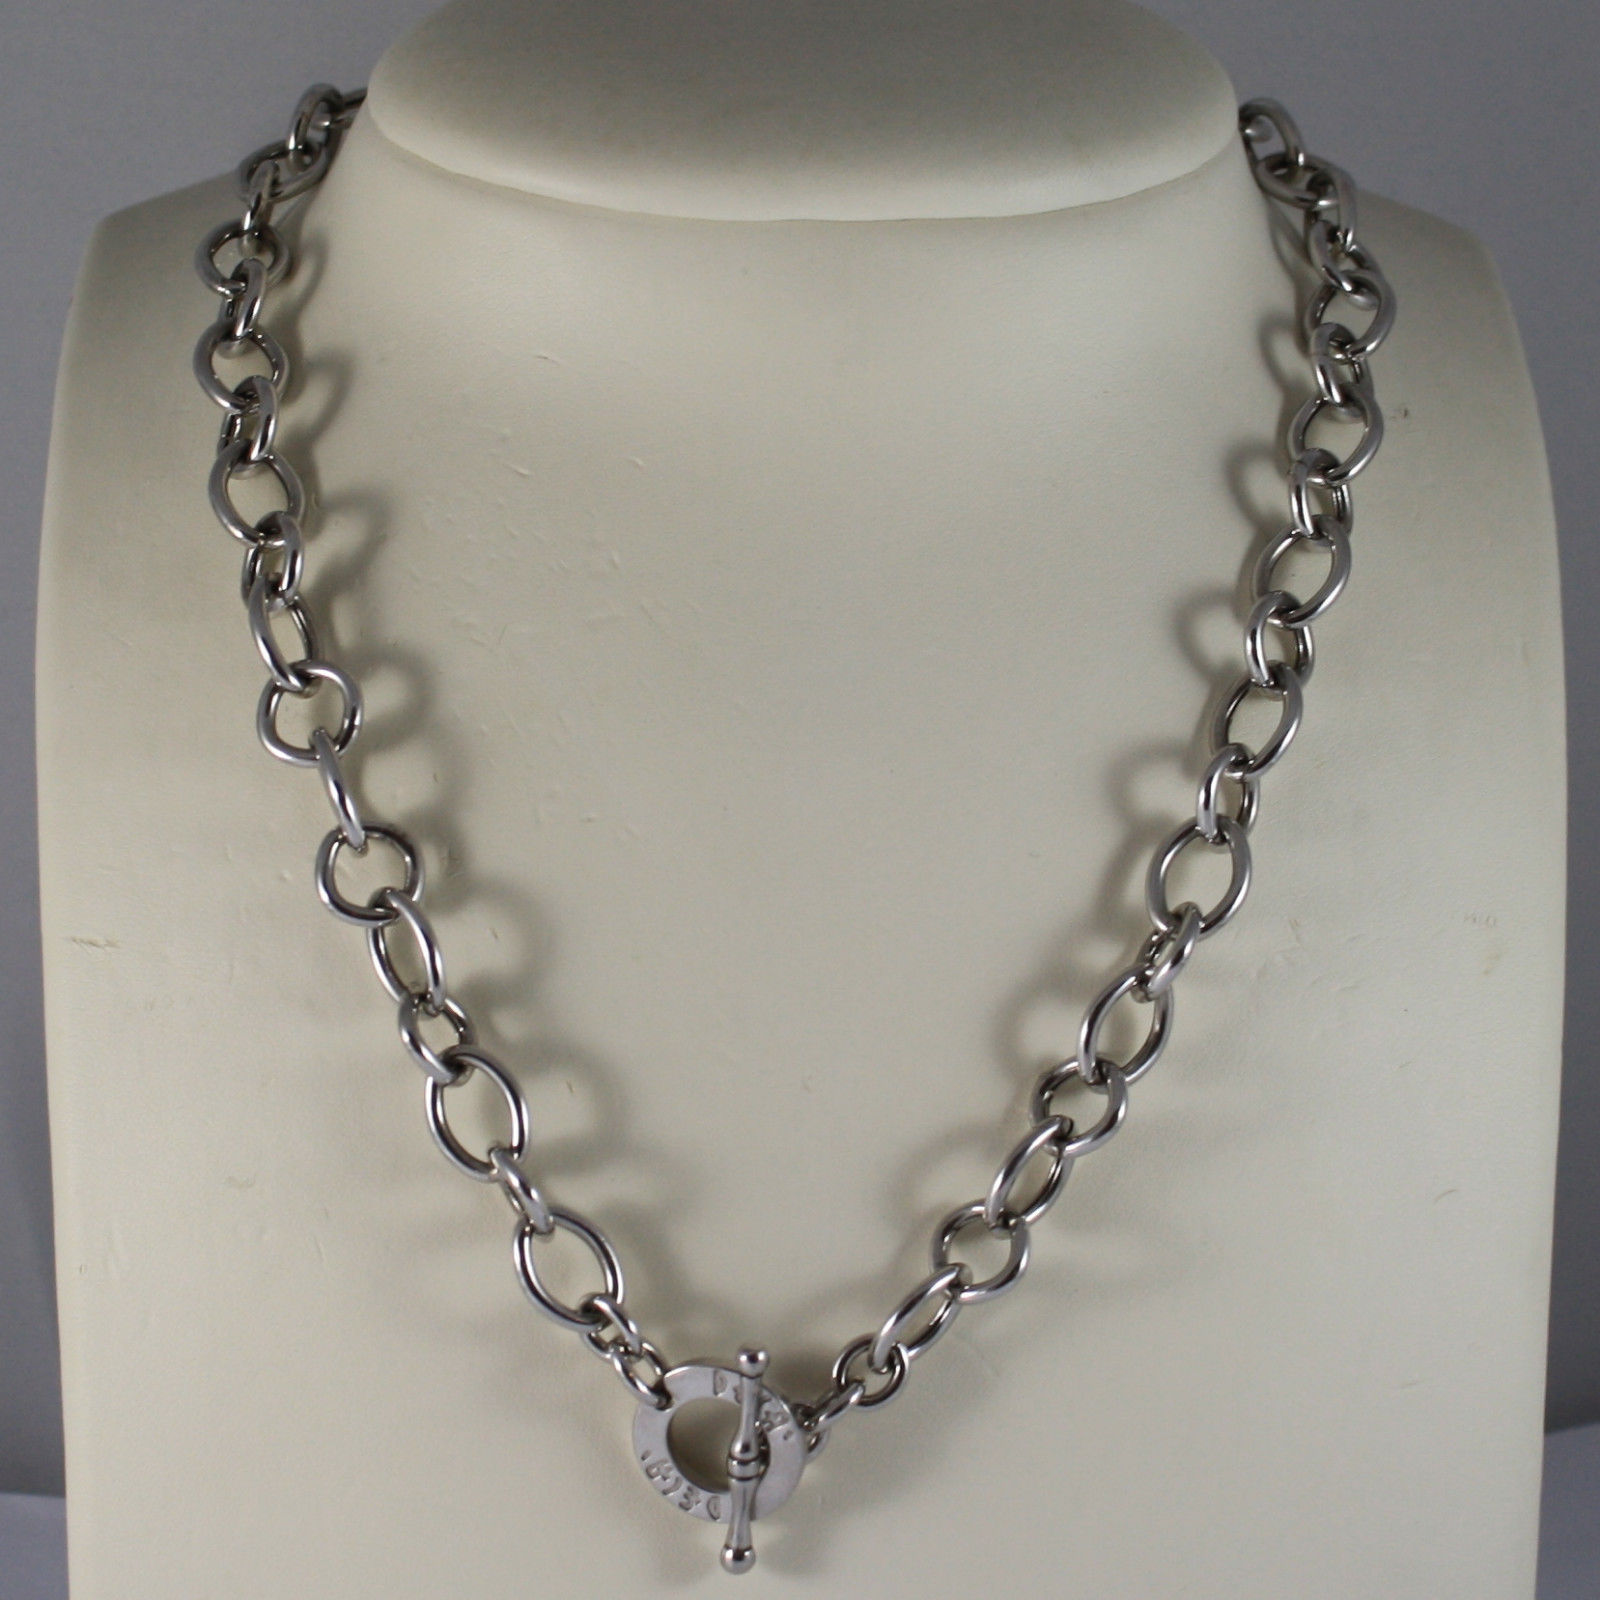 .925 RHODIUM SILVER NECKLACE WITH OVAL MESH